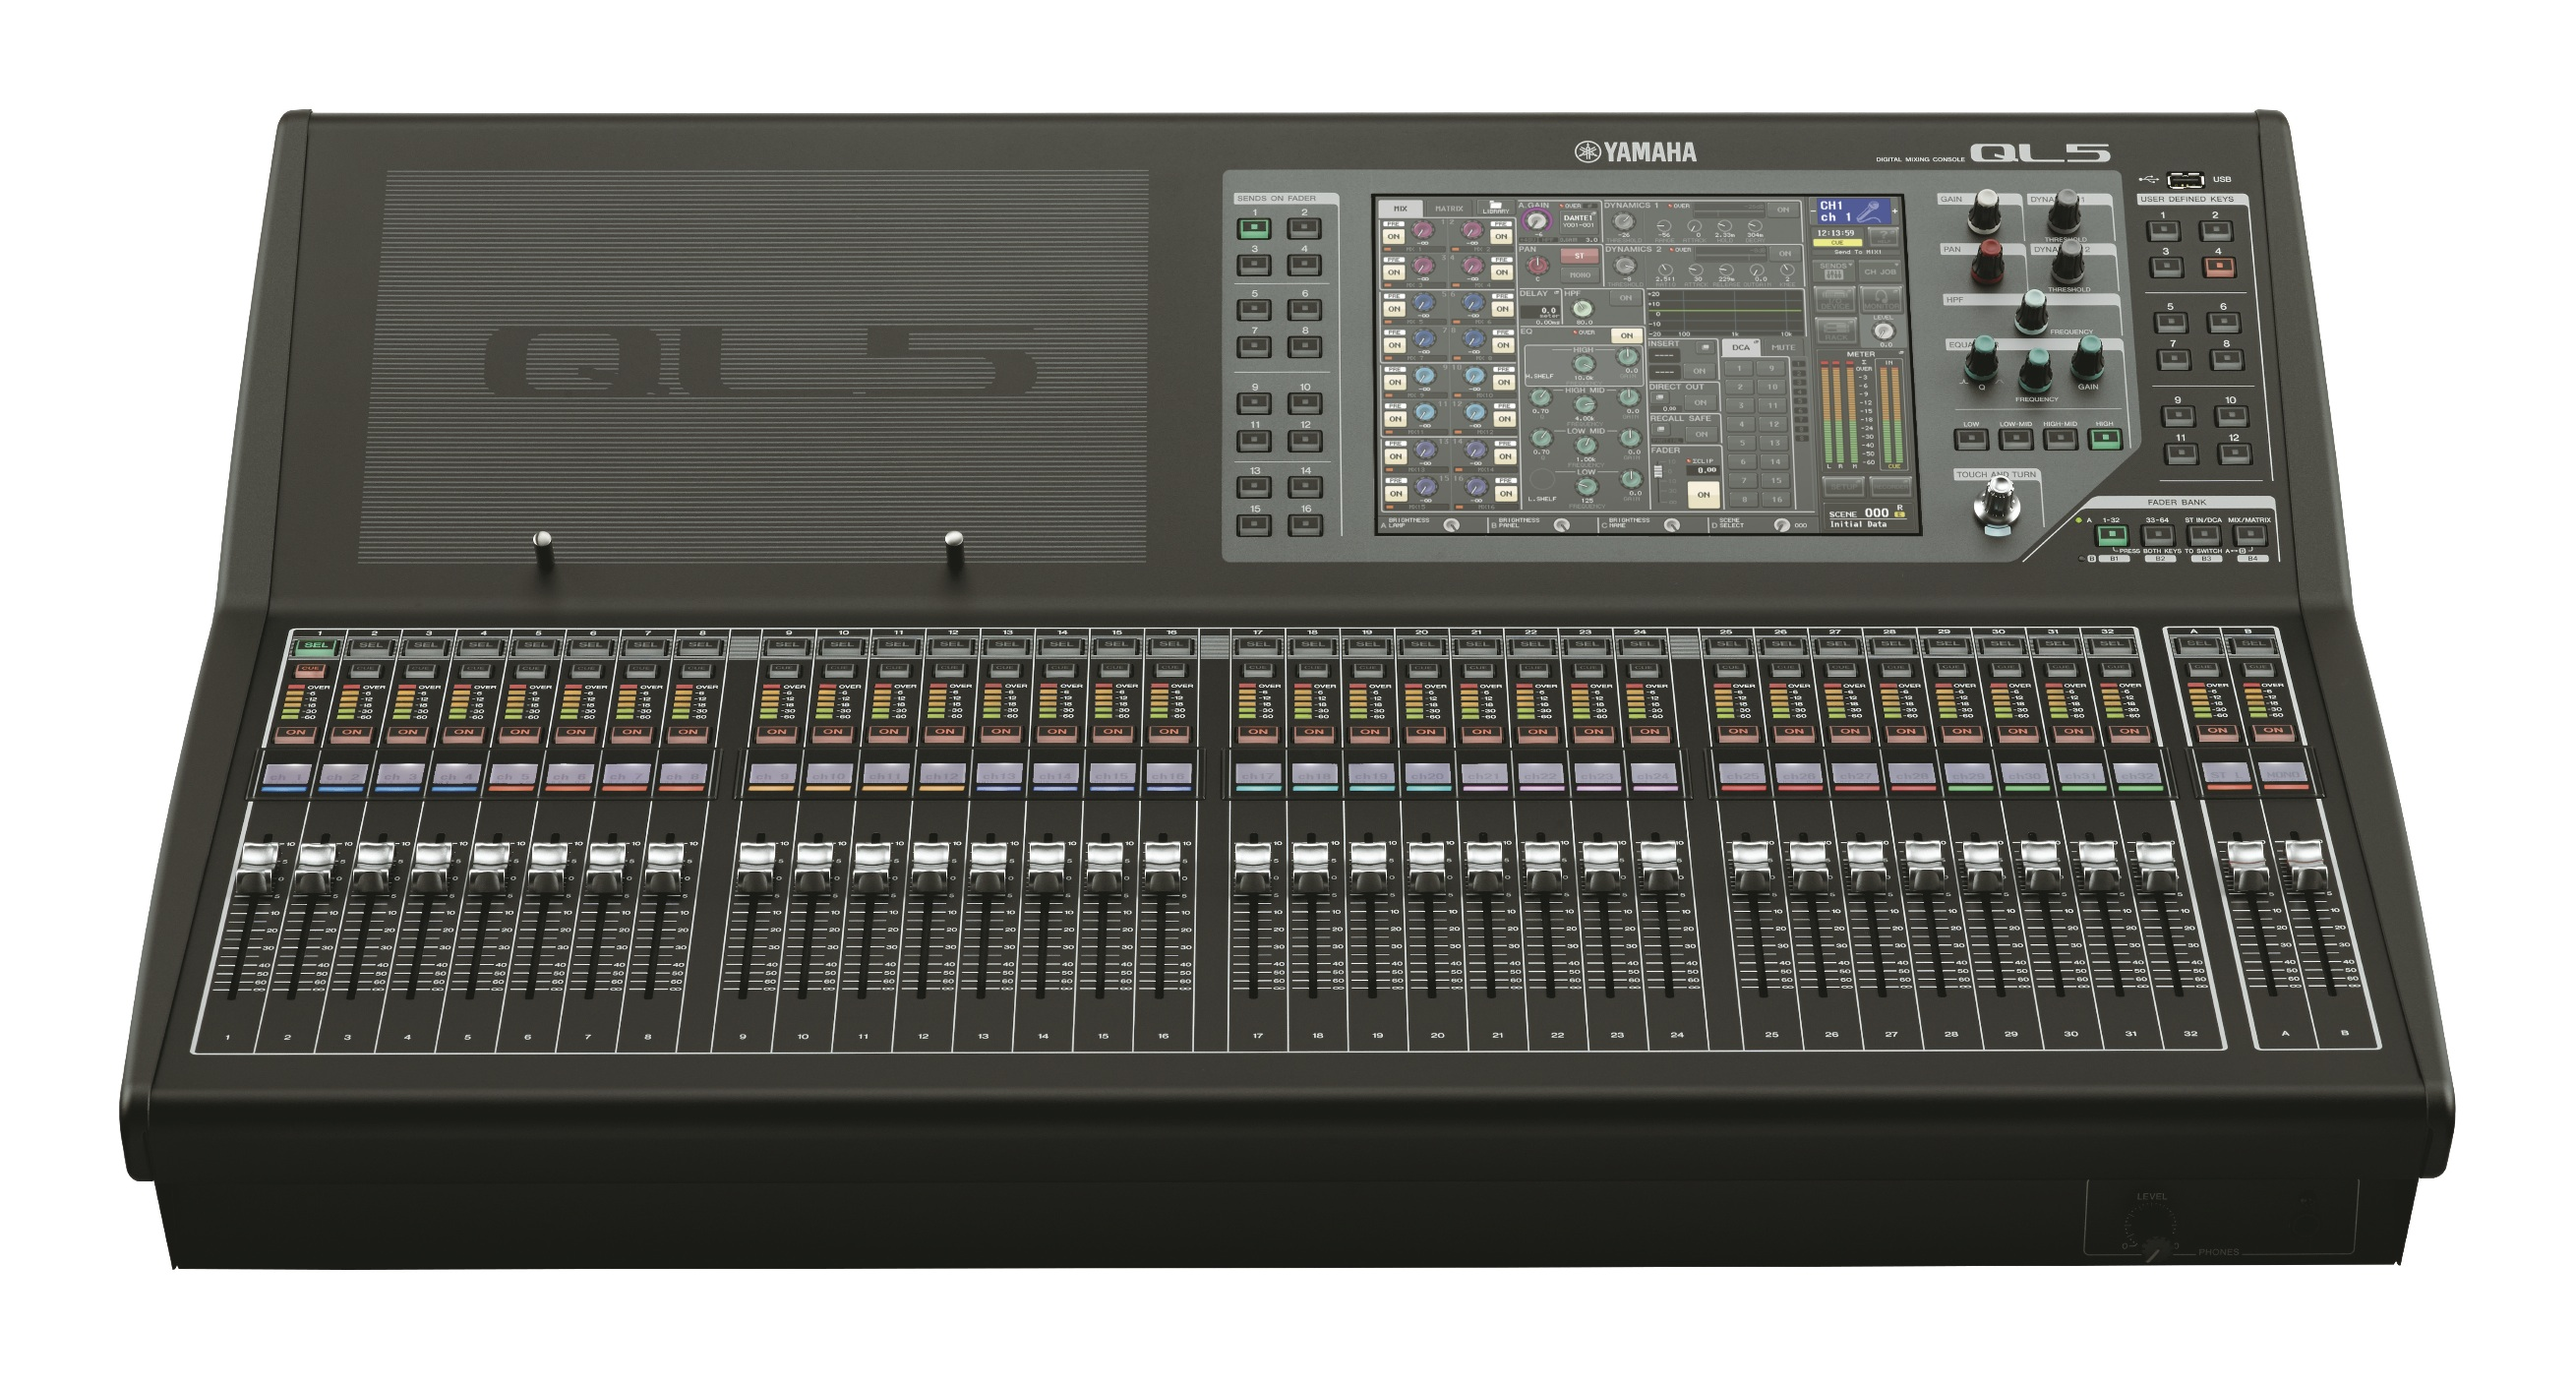 Yamaha Expands the CentraLogic Vibe With New Consoles and Updated Software